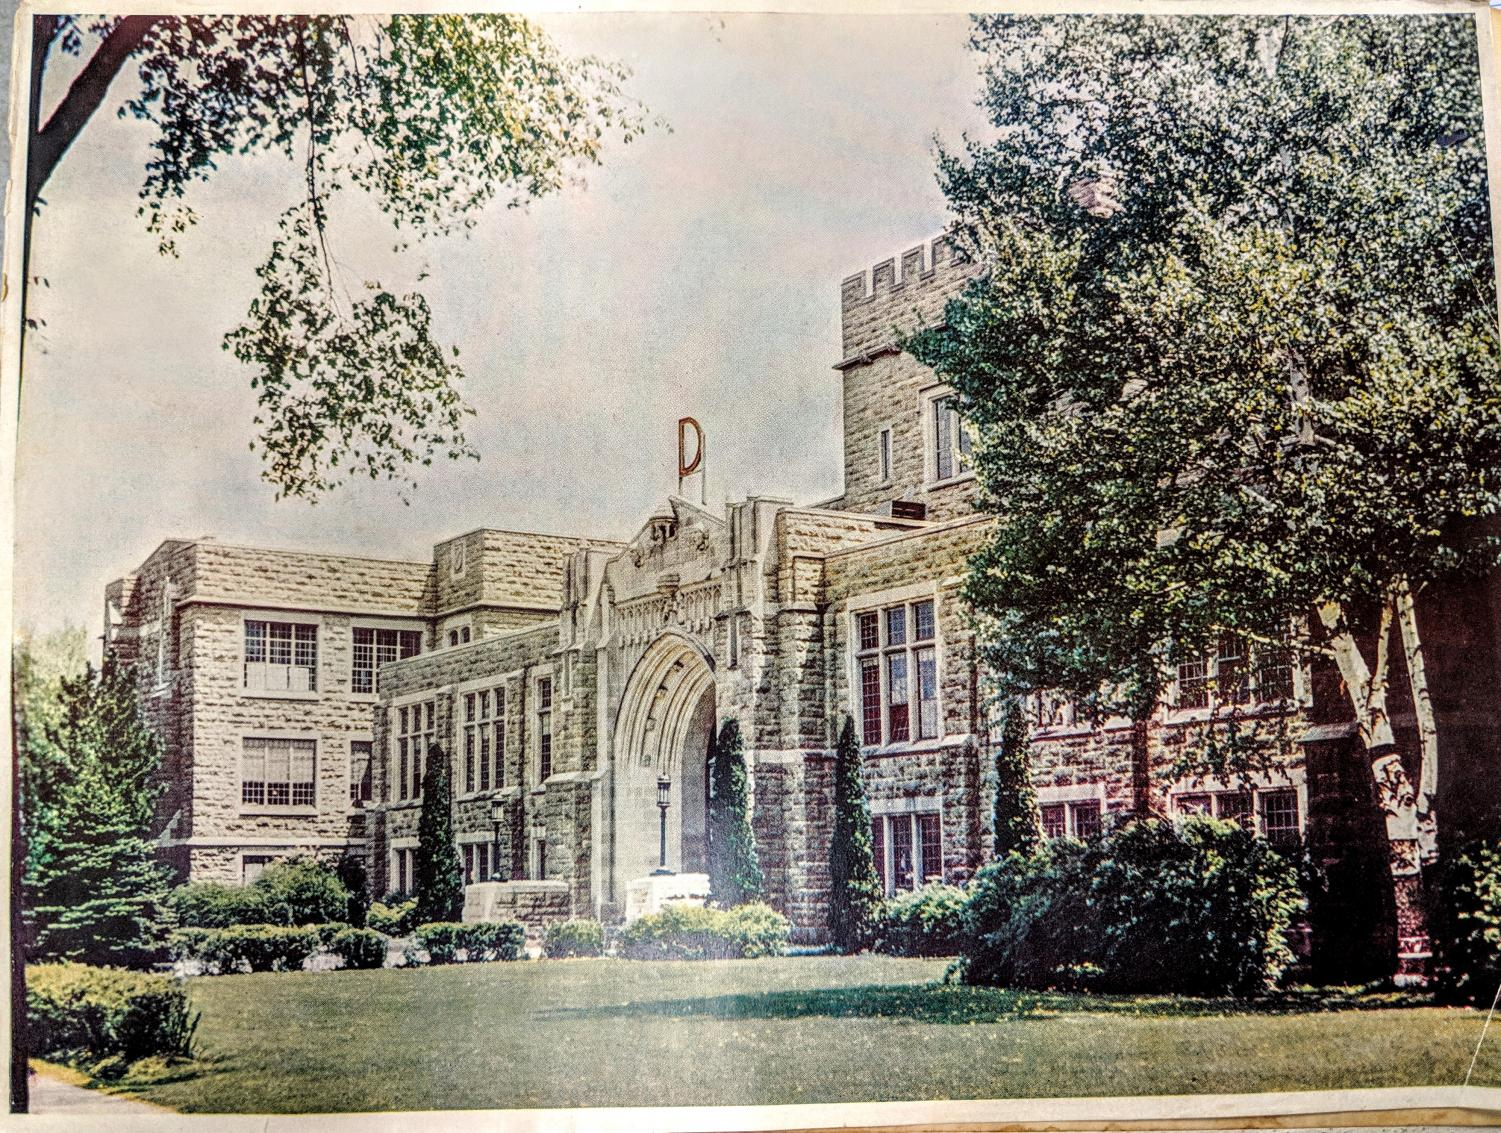 Dubuque Senior High School as seen in the 1947 Echo yearbook. Notice the